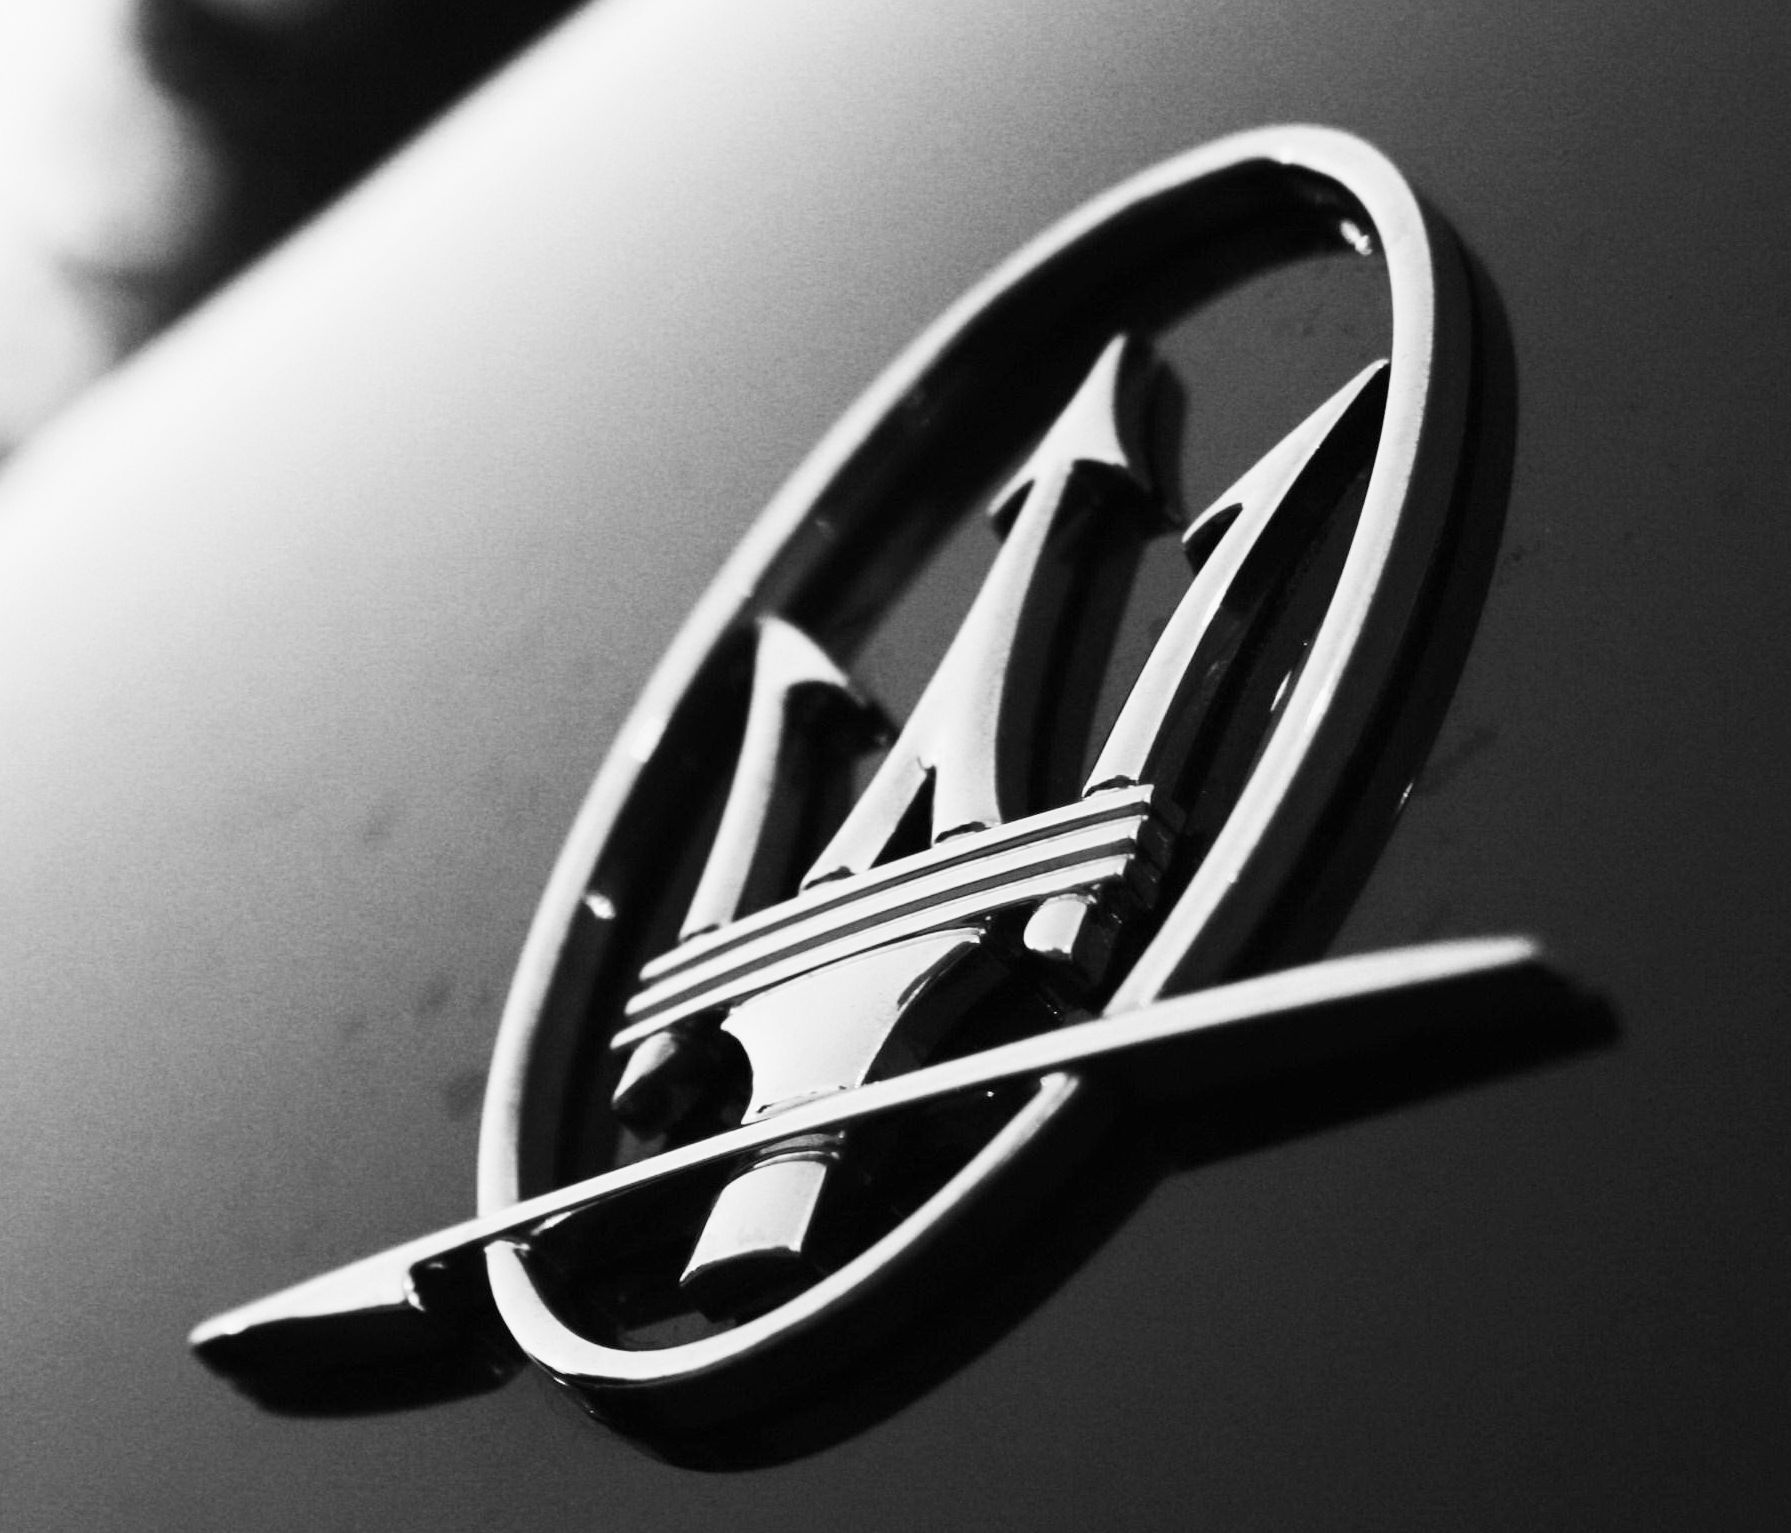 le logo maserati cars motorcycles that i love pinterest maserati cars and classic cars. Black Bedroom Furniture Sets. Home Design Ideas